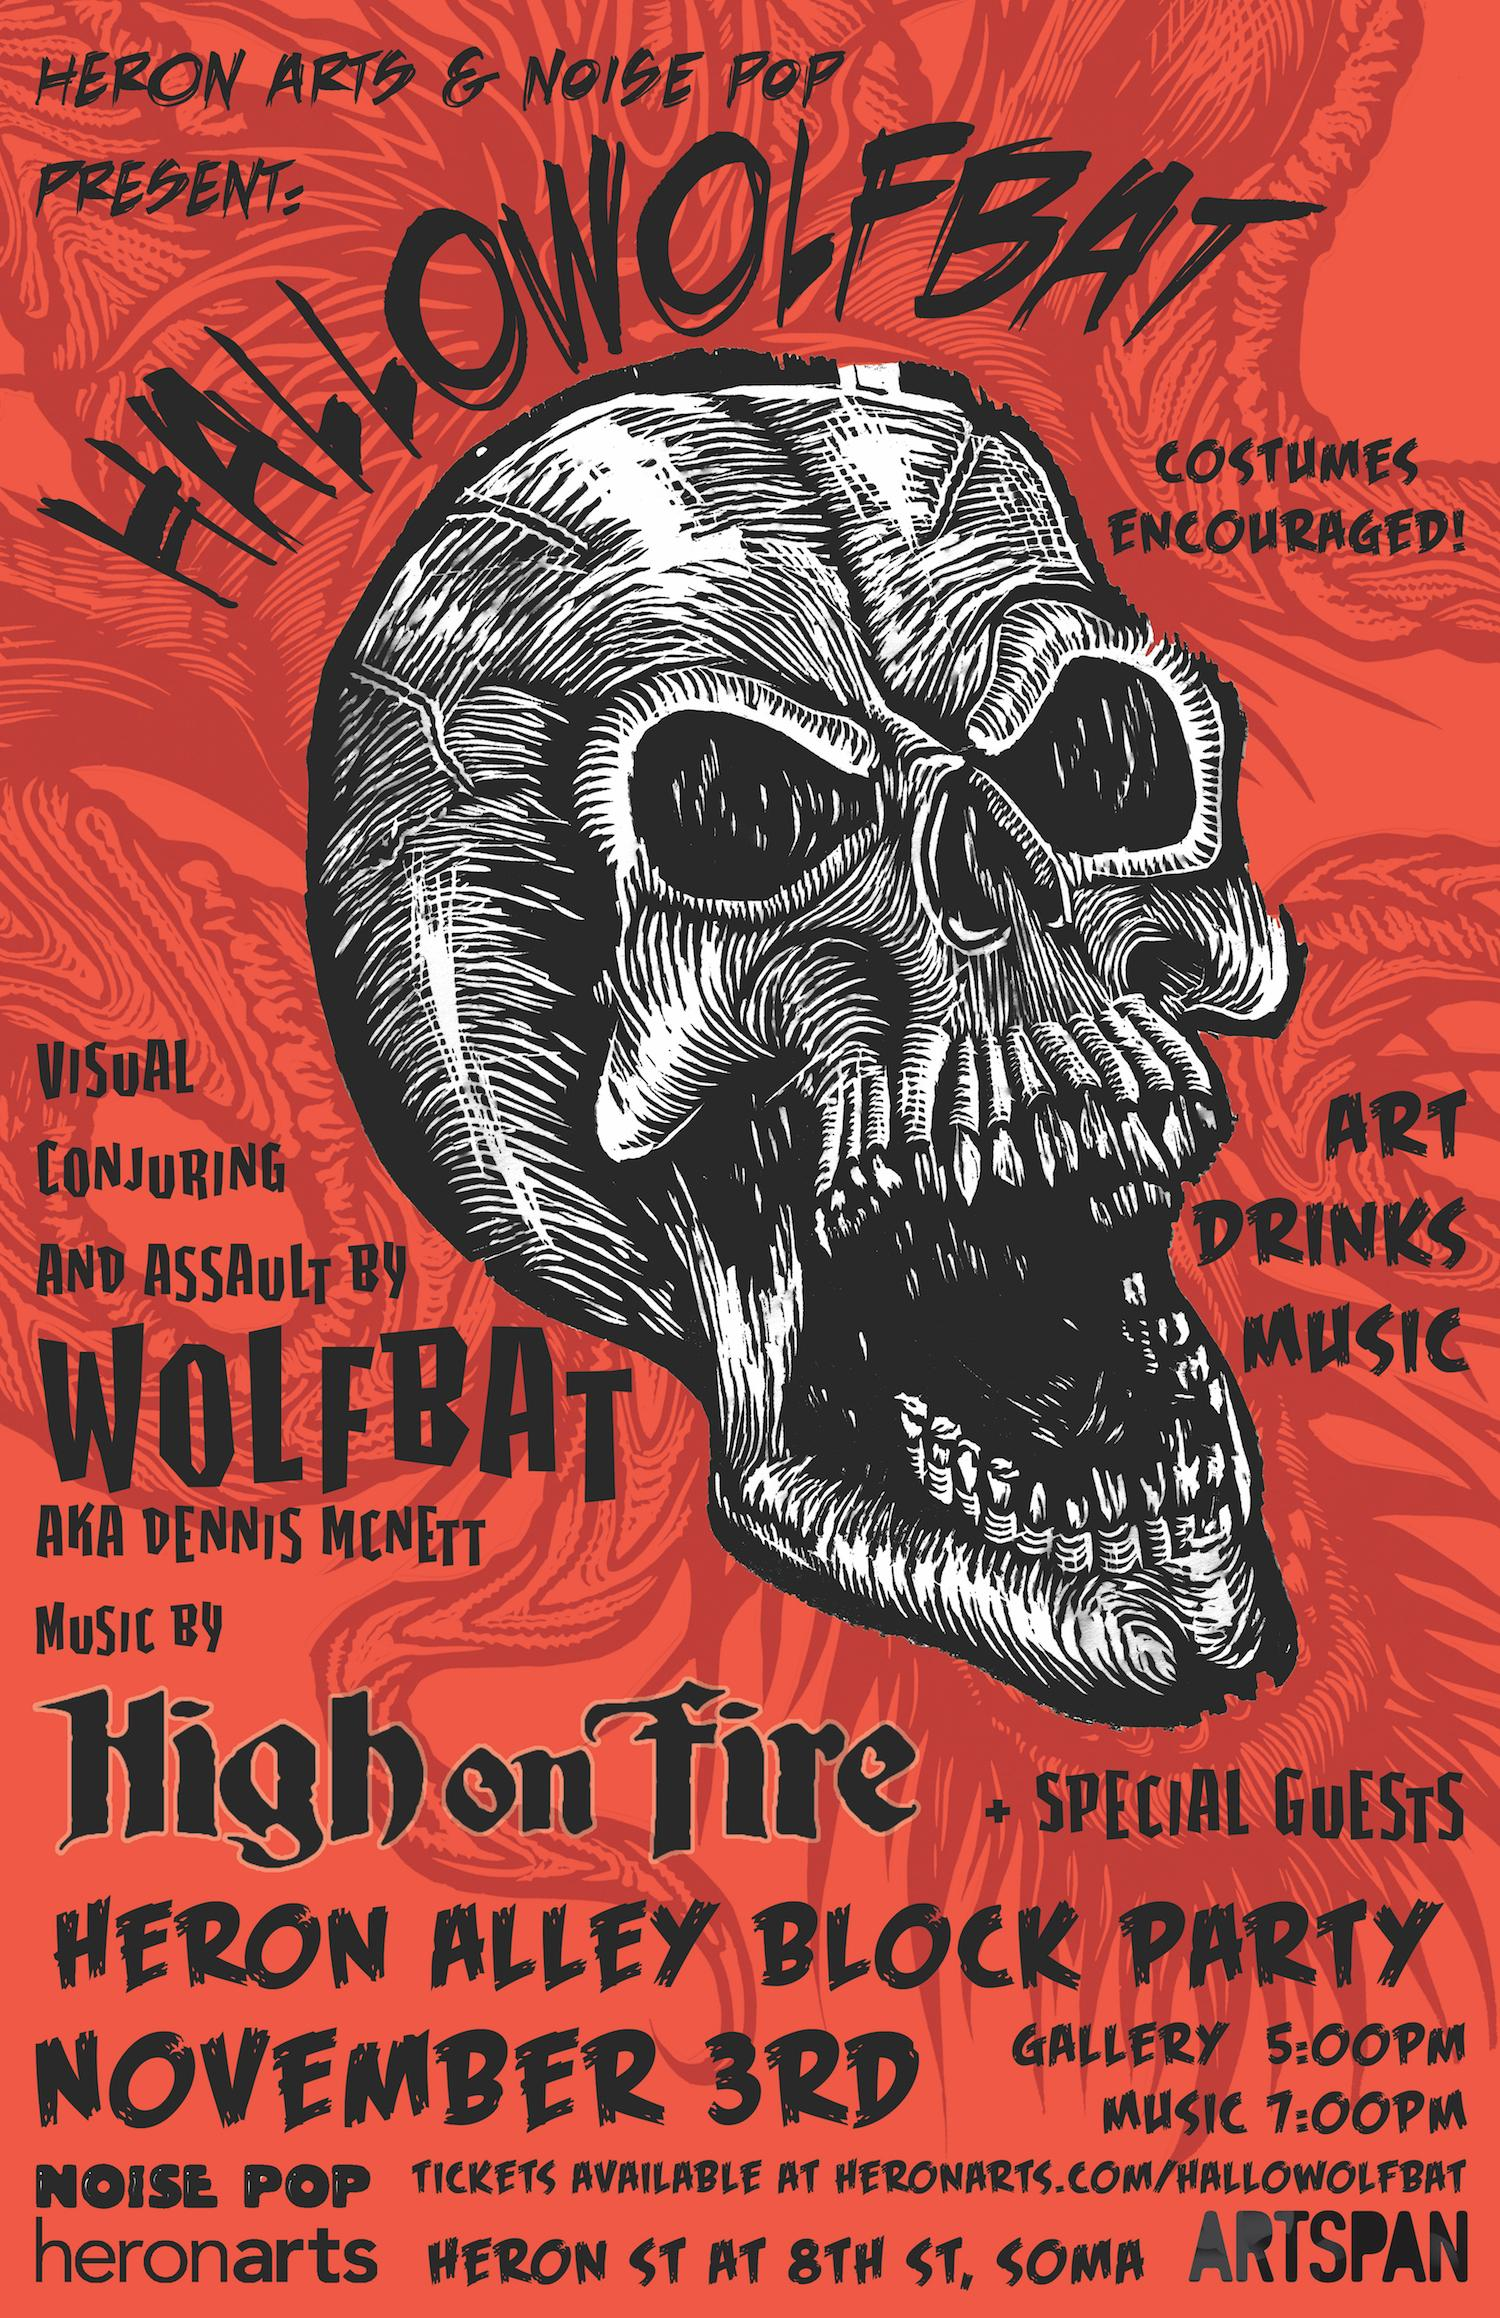 A Visual Conjuring and Performative Art Installation & Exhibition by Dennis McNett (Wolfbat) and Musical Performance by High on Fire